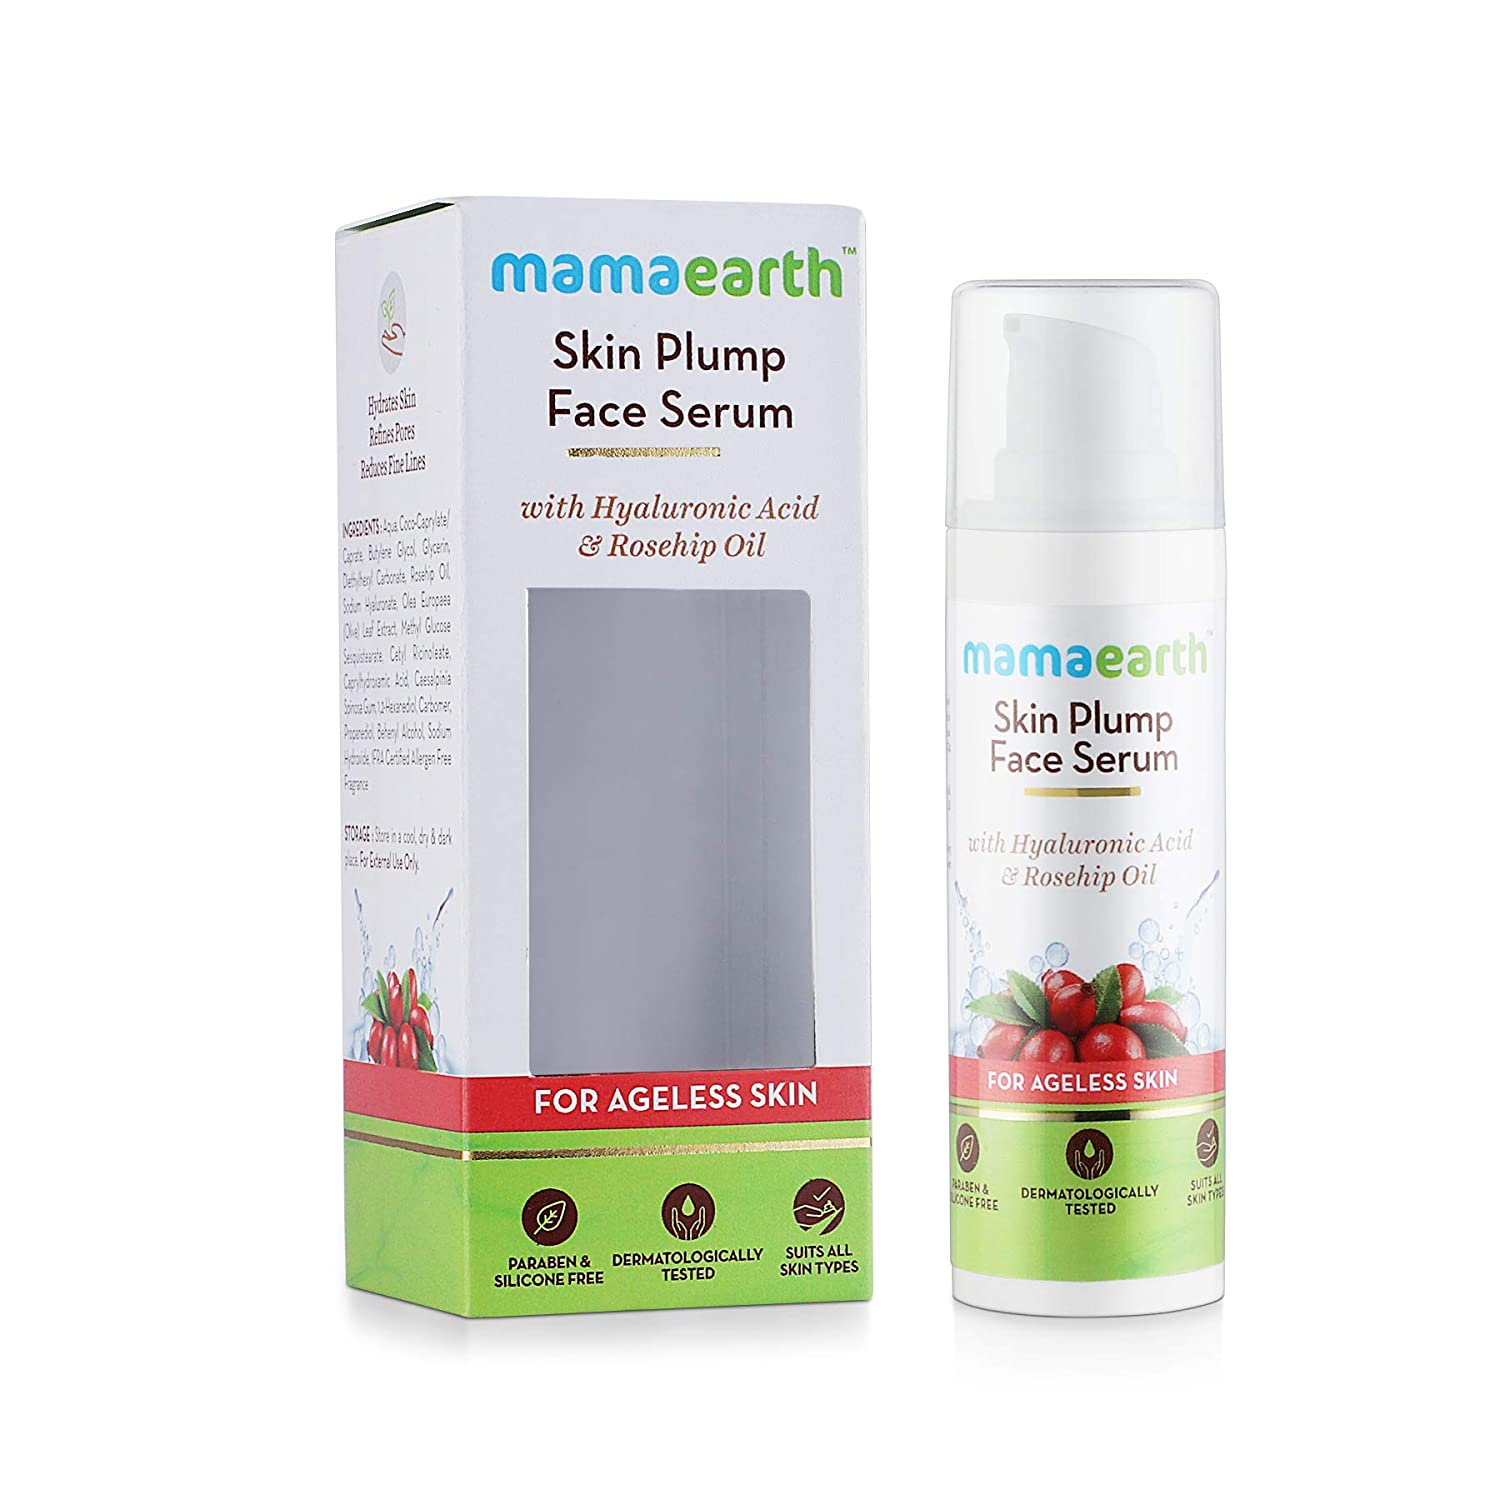 Mamaearth Skin Plump Face Serum Anti Aging Cream For Glowing Skin With Hyaluronic Acid Rosehip Oil For Ageless Skin 30ml Amazon In Beauty